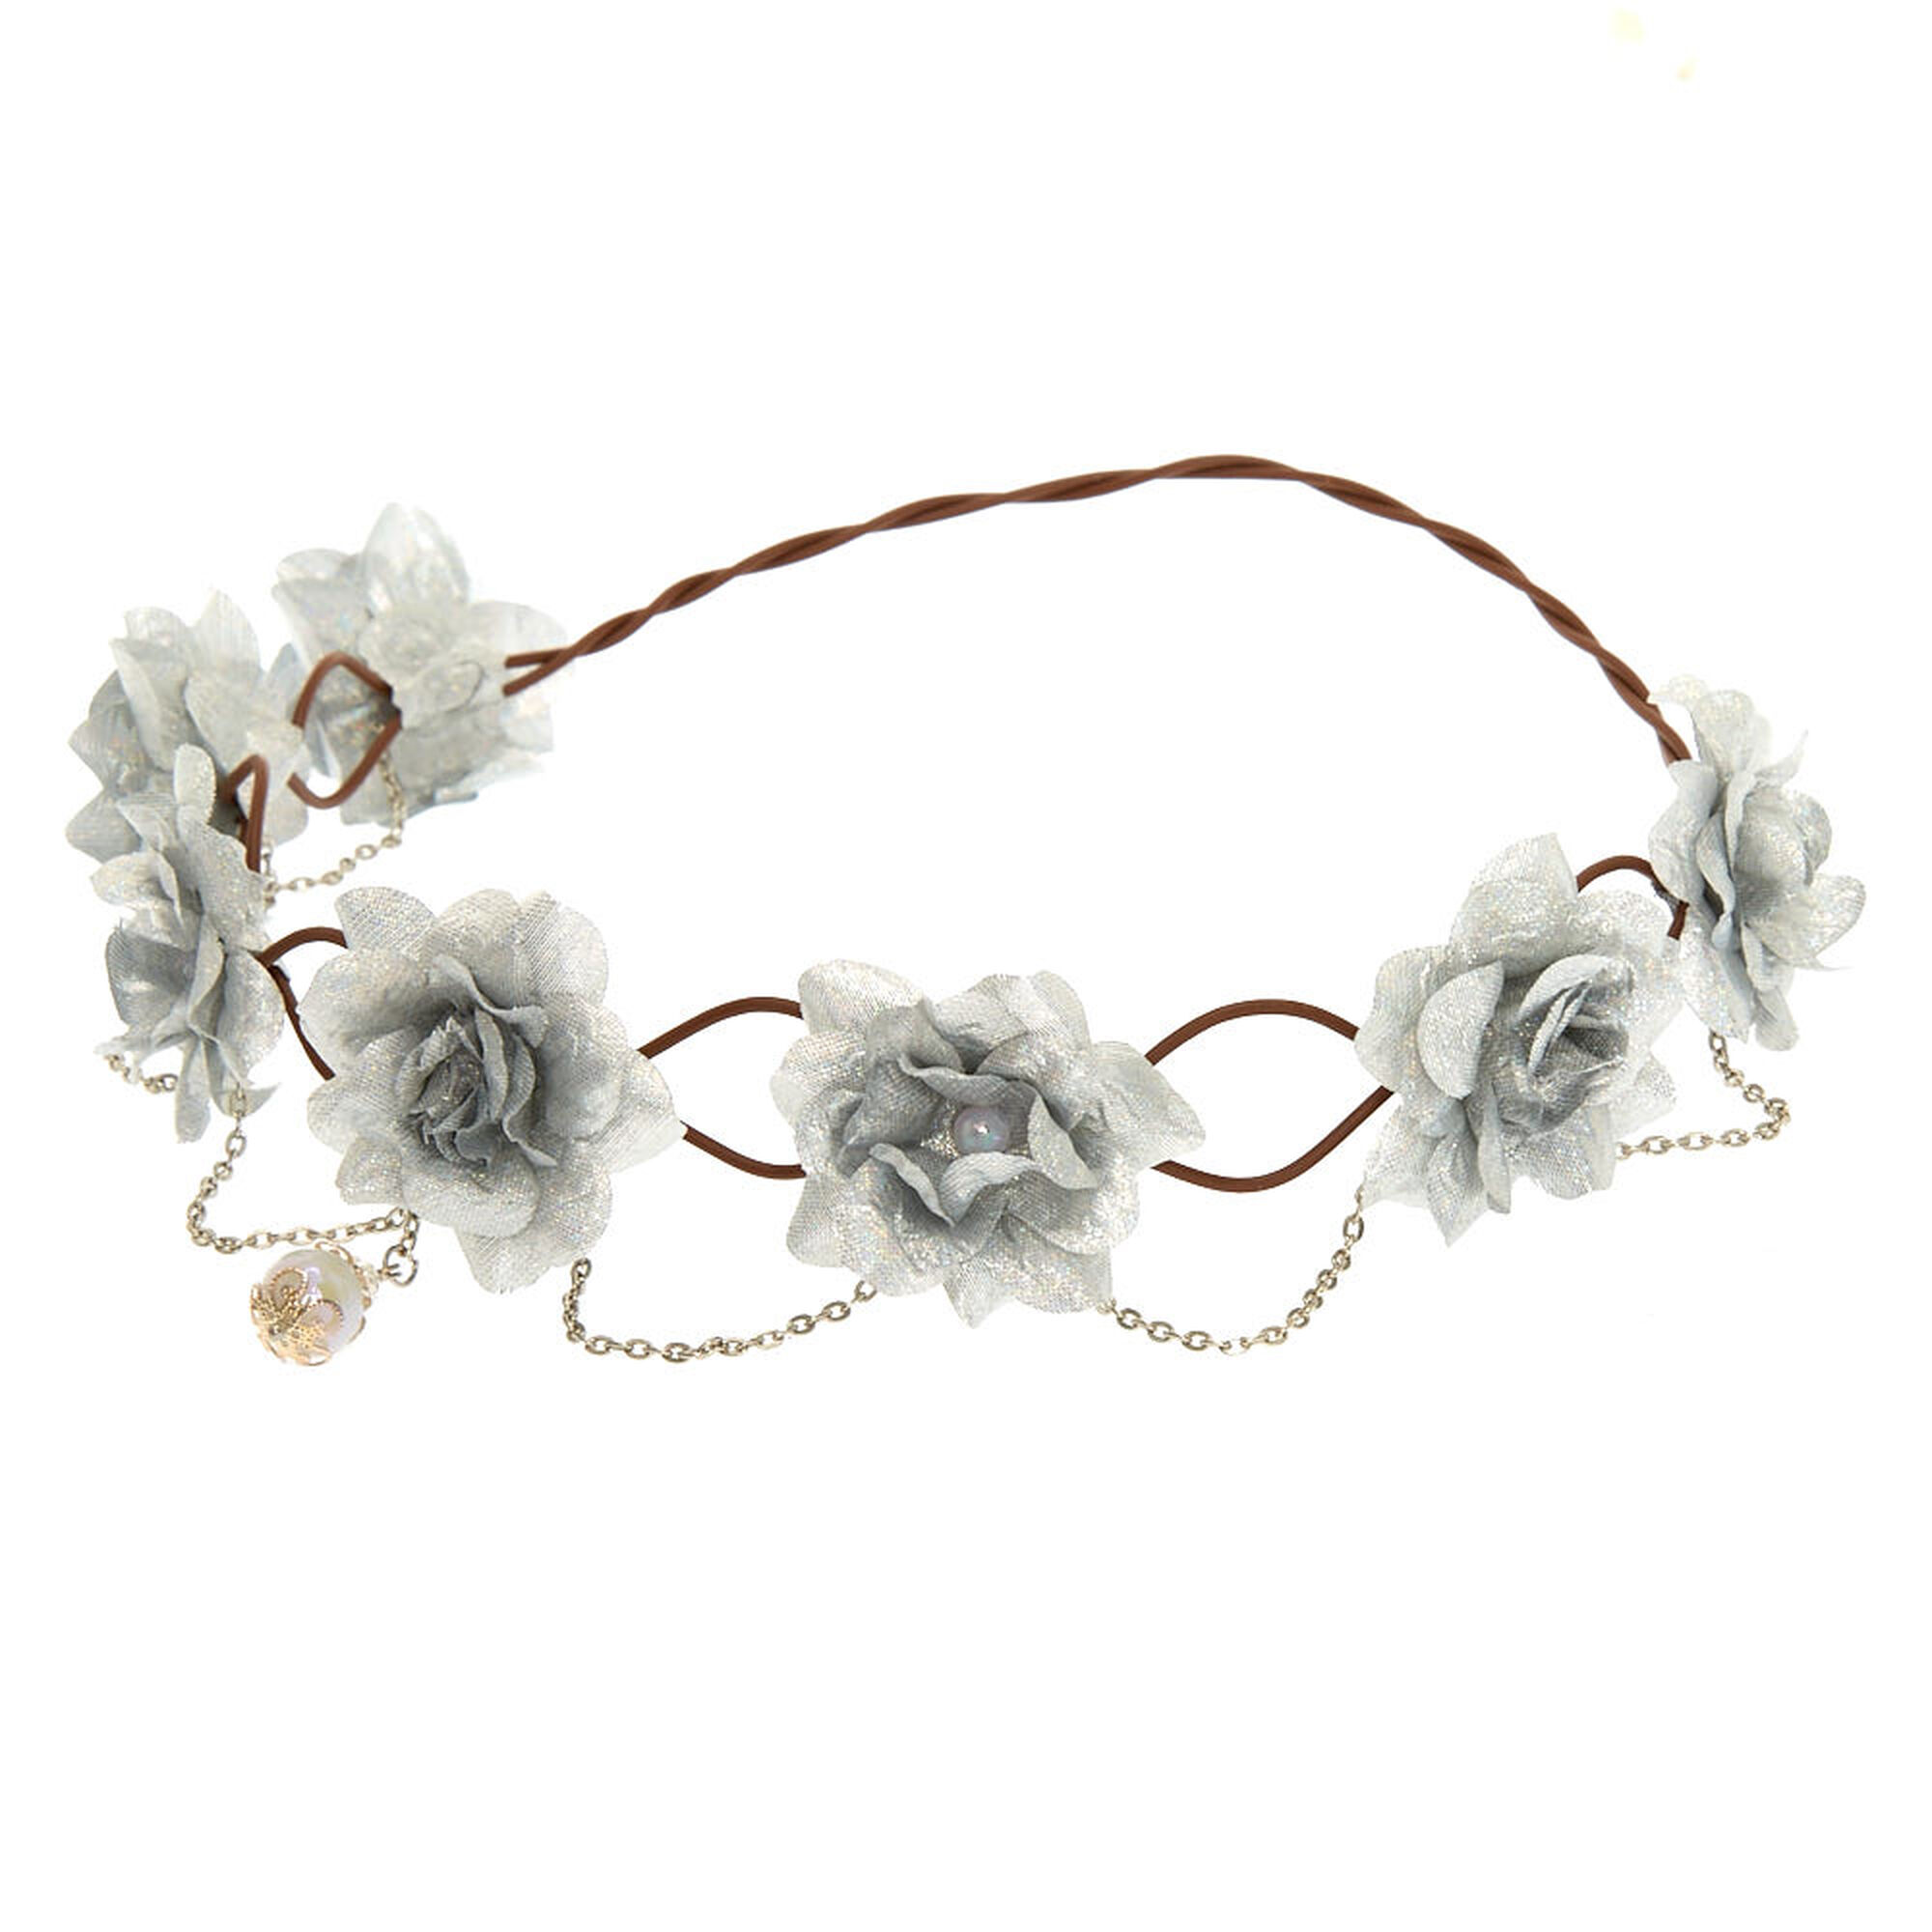 Silver flowers and chains flower crown claires silver flowers and chains flower crown izmirmasajfo Image collections